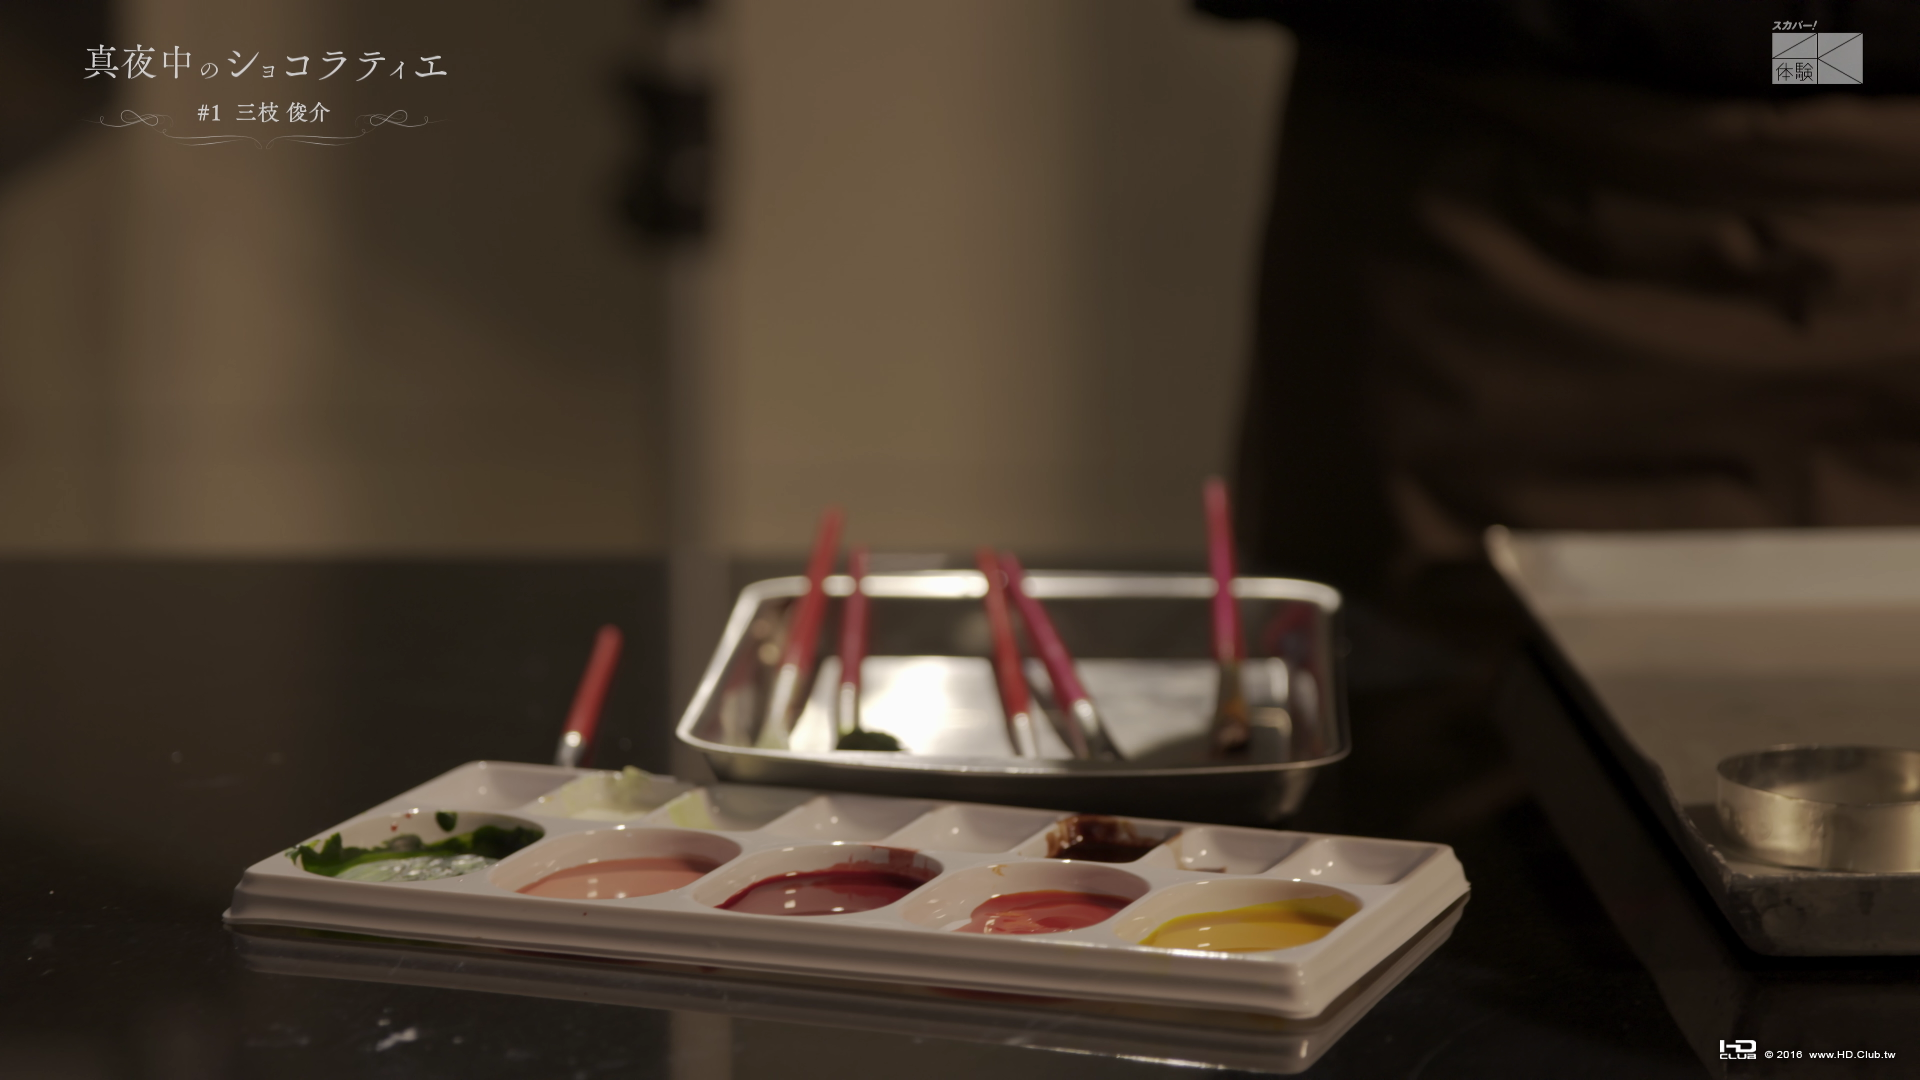 Screenshot_2016-10-12-12-24-53.png